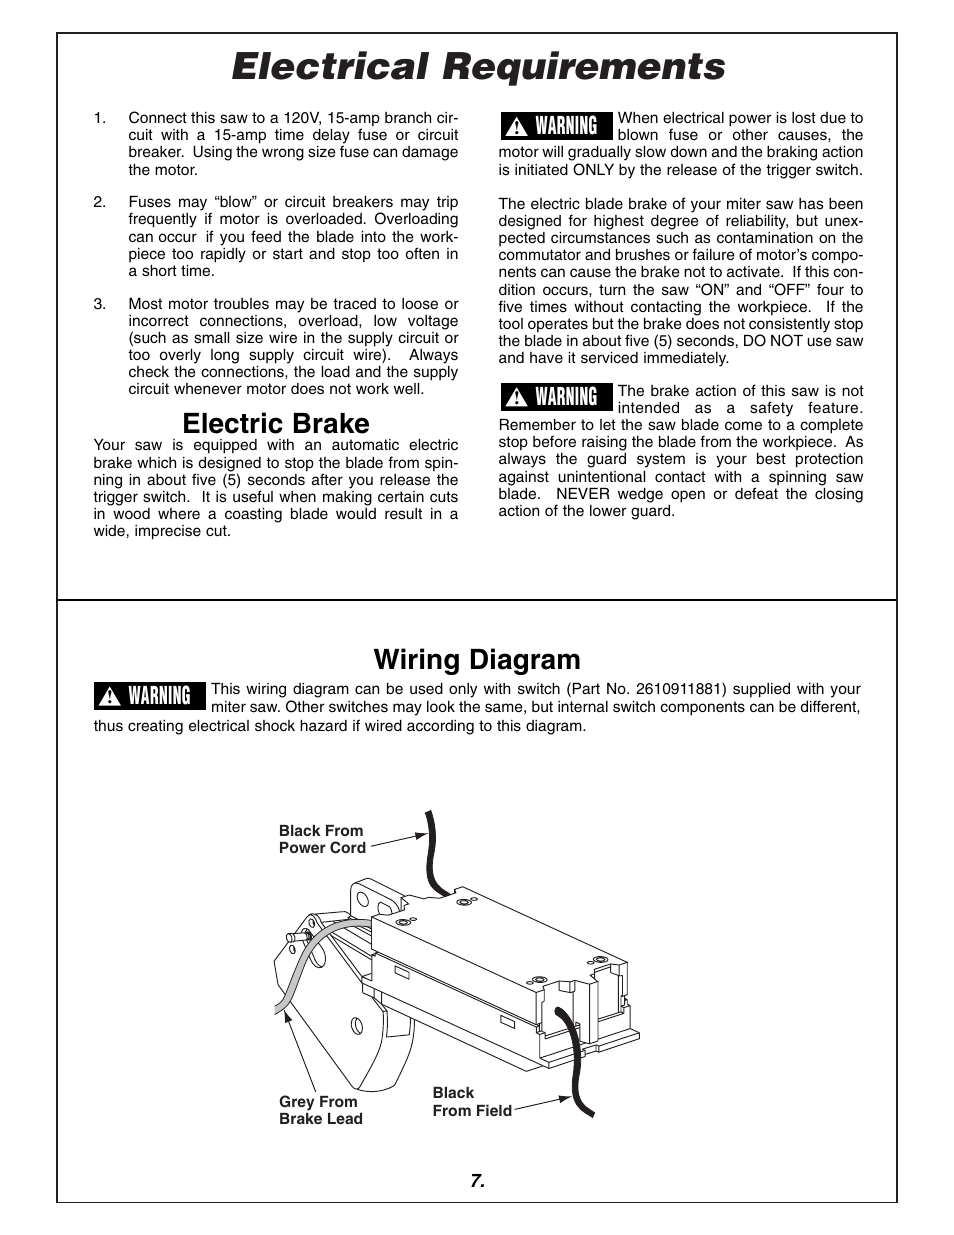 hight resolution of electrical requirements electric brake wiring diagram bosch 3915 user manual page 7 104